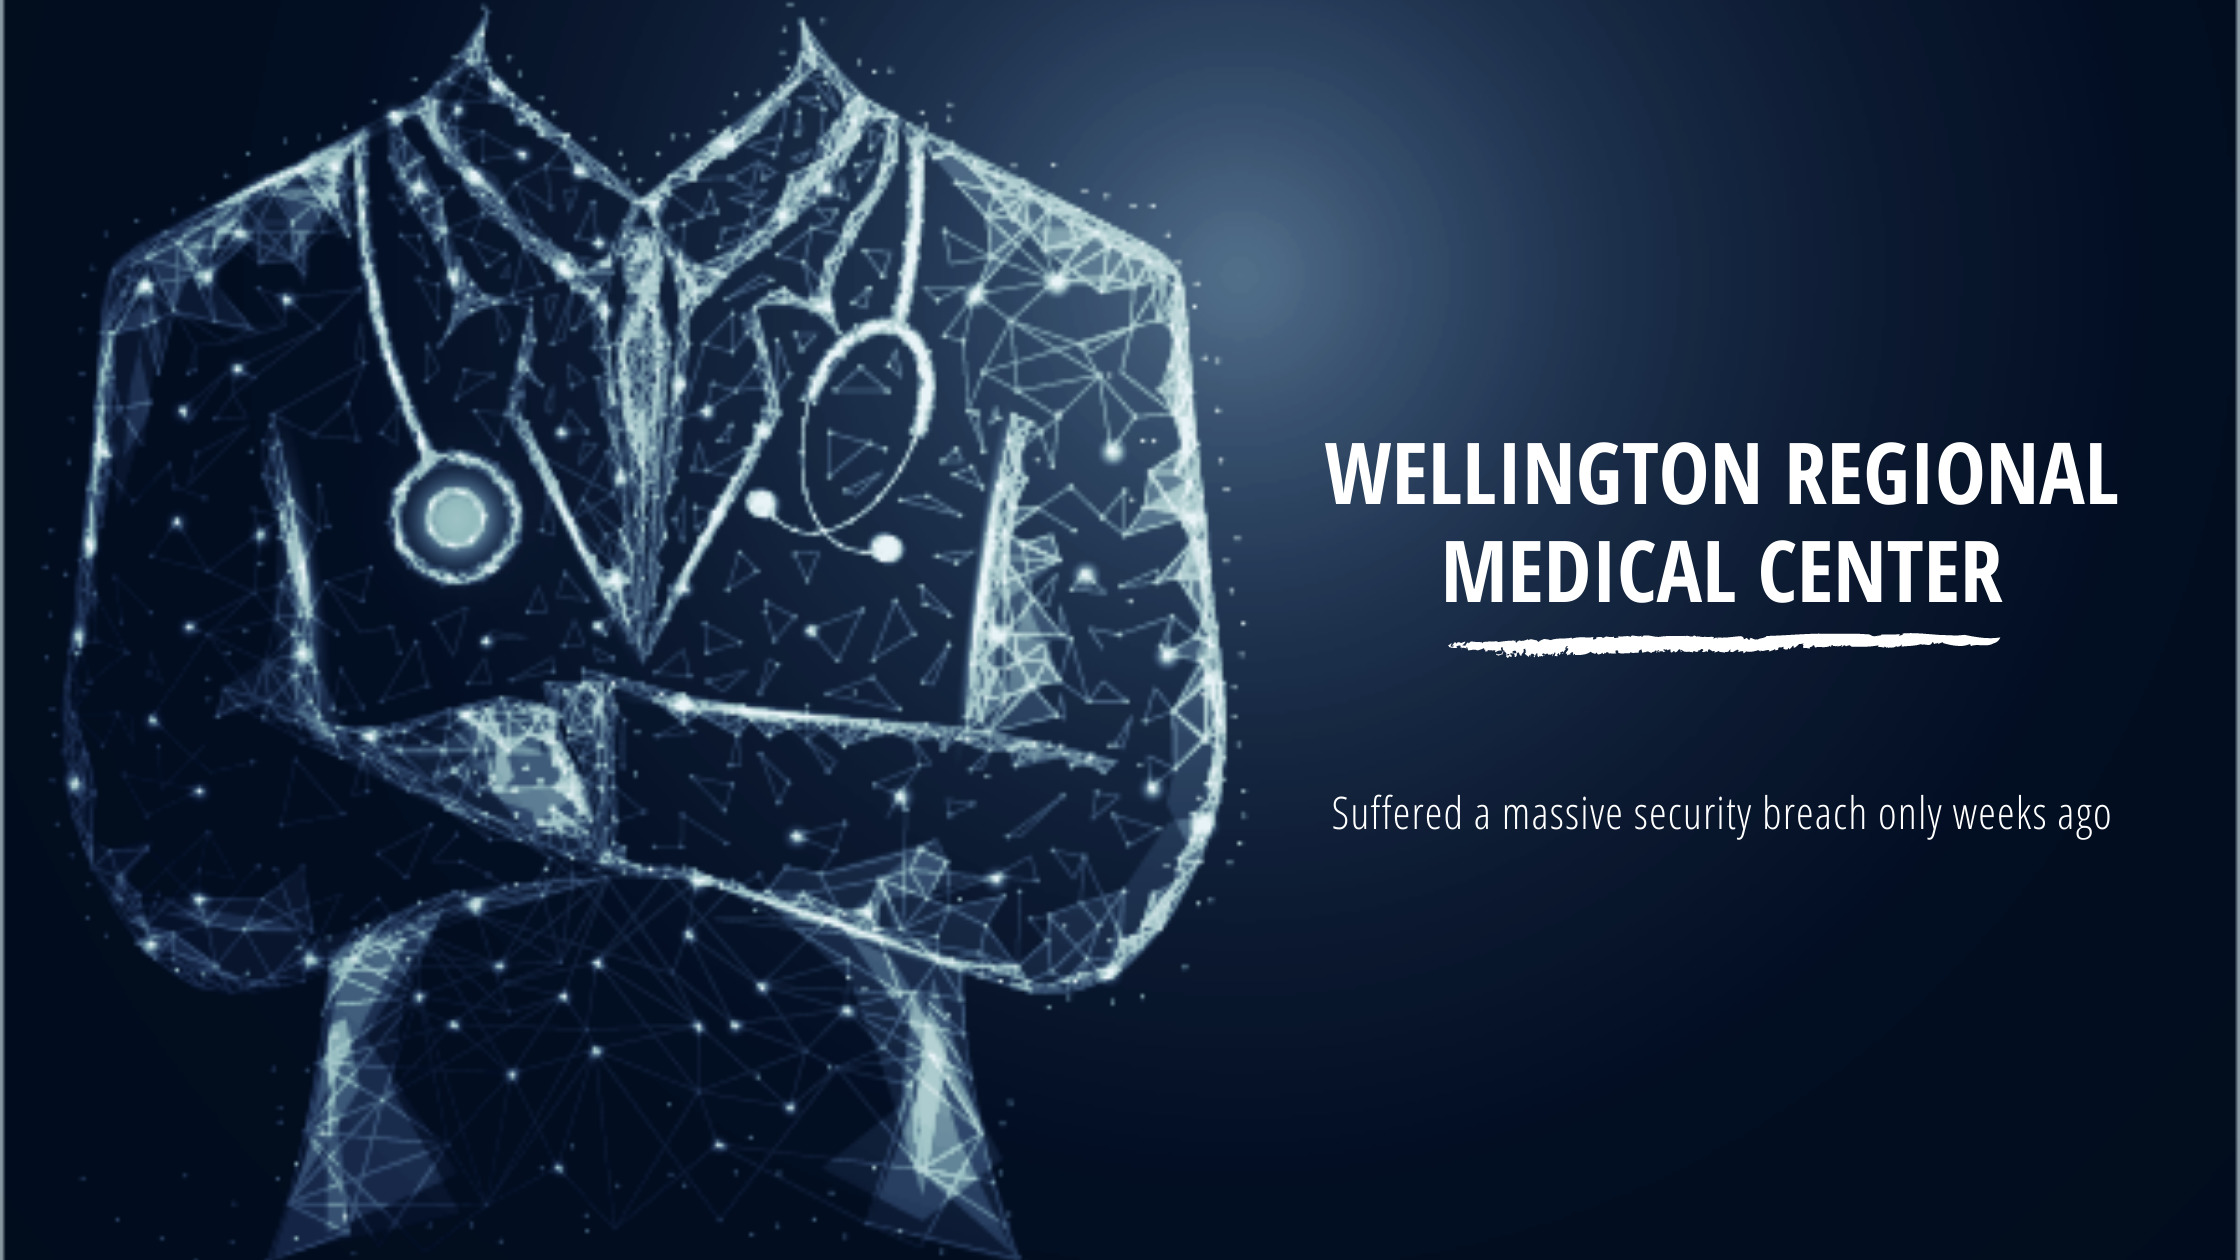 Wellington Regional Medical Center suffered a massive security breach only weeks ago